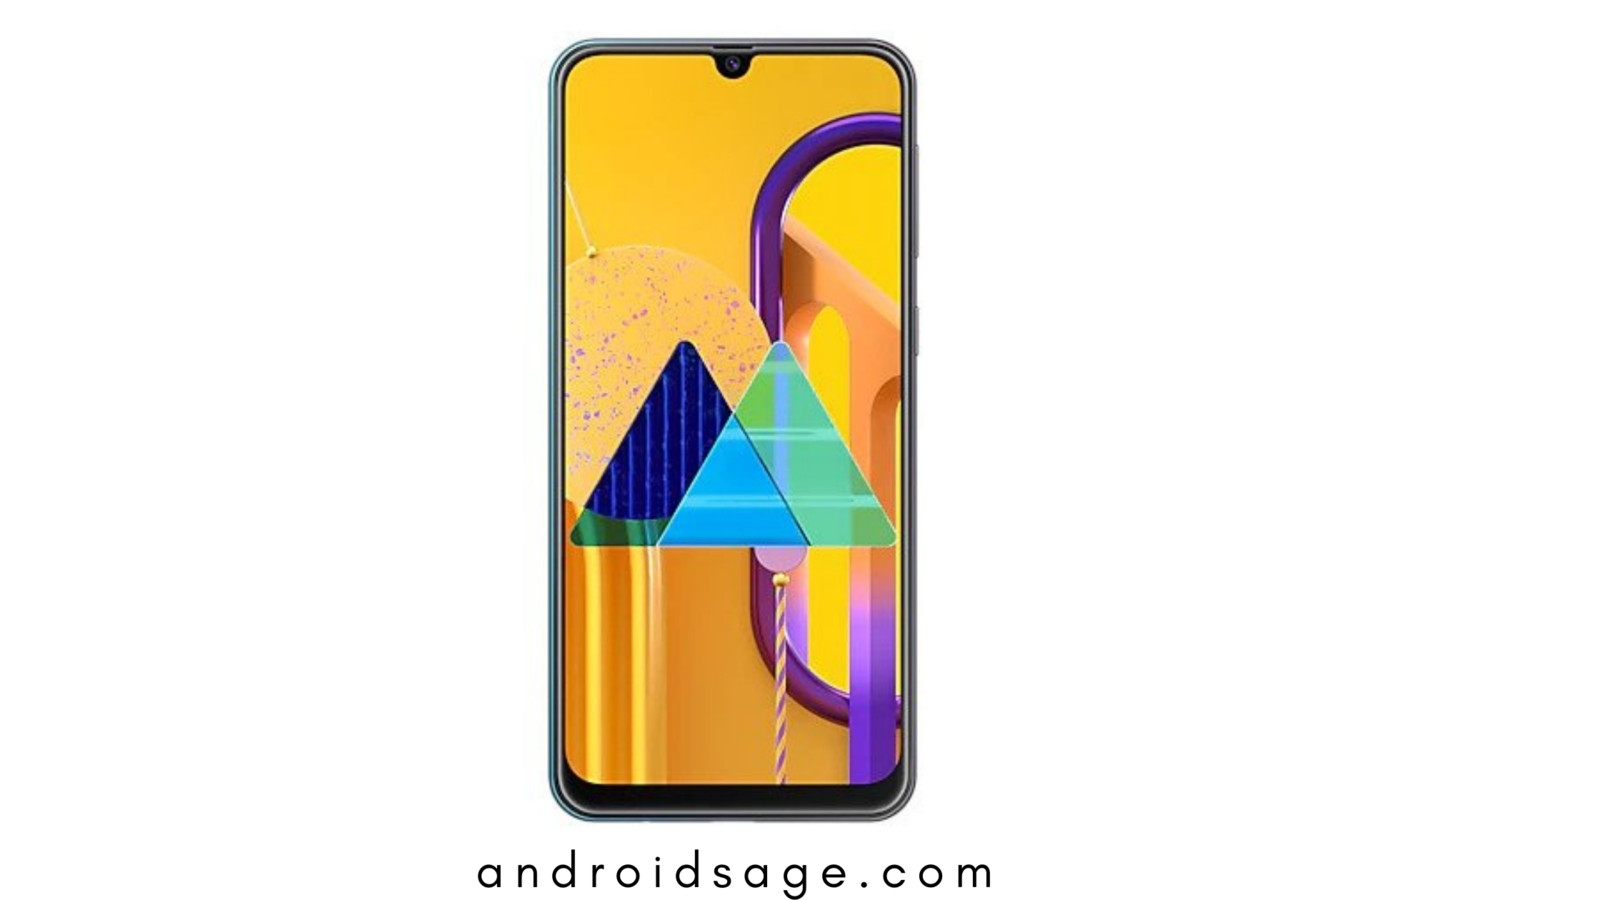 Samsung Galaxy M30s Android 11 update with One UI 3